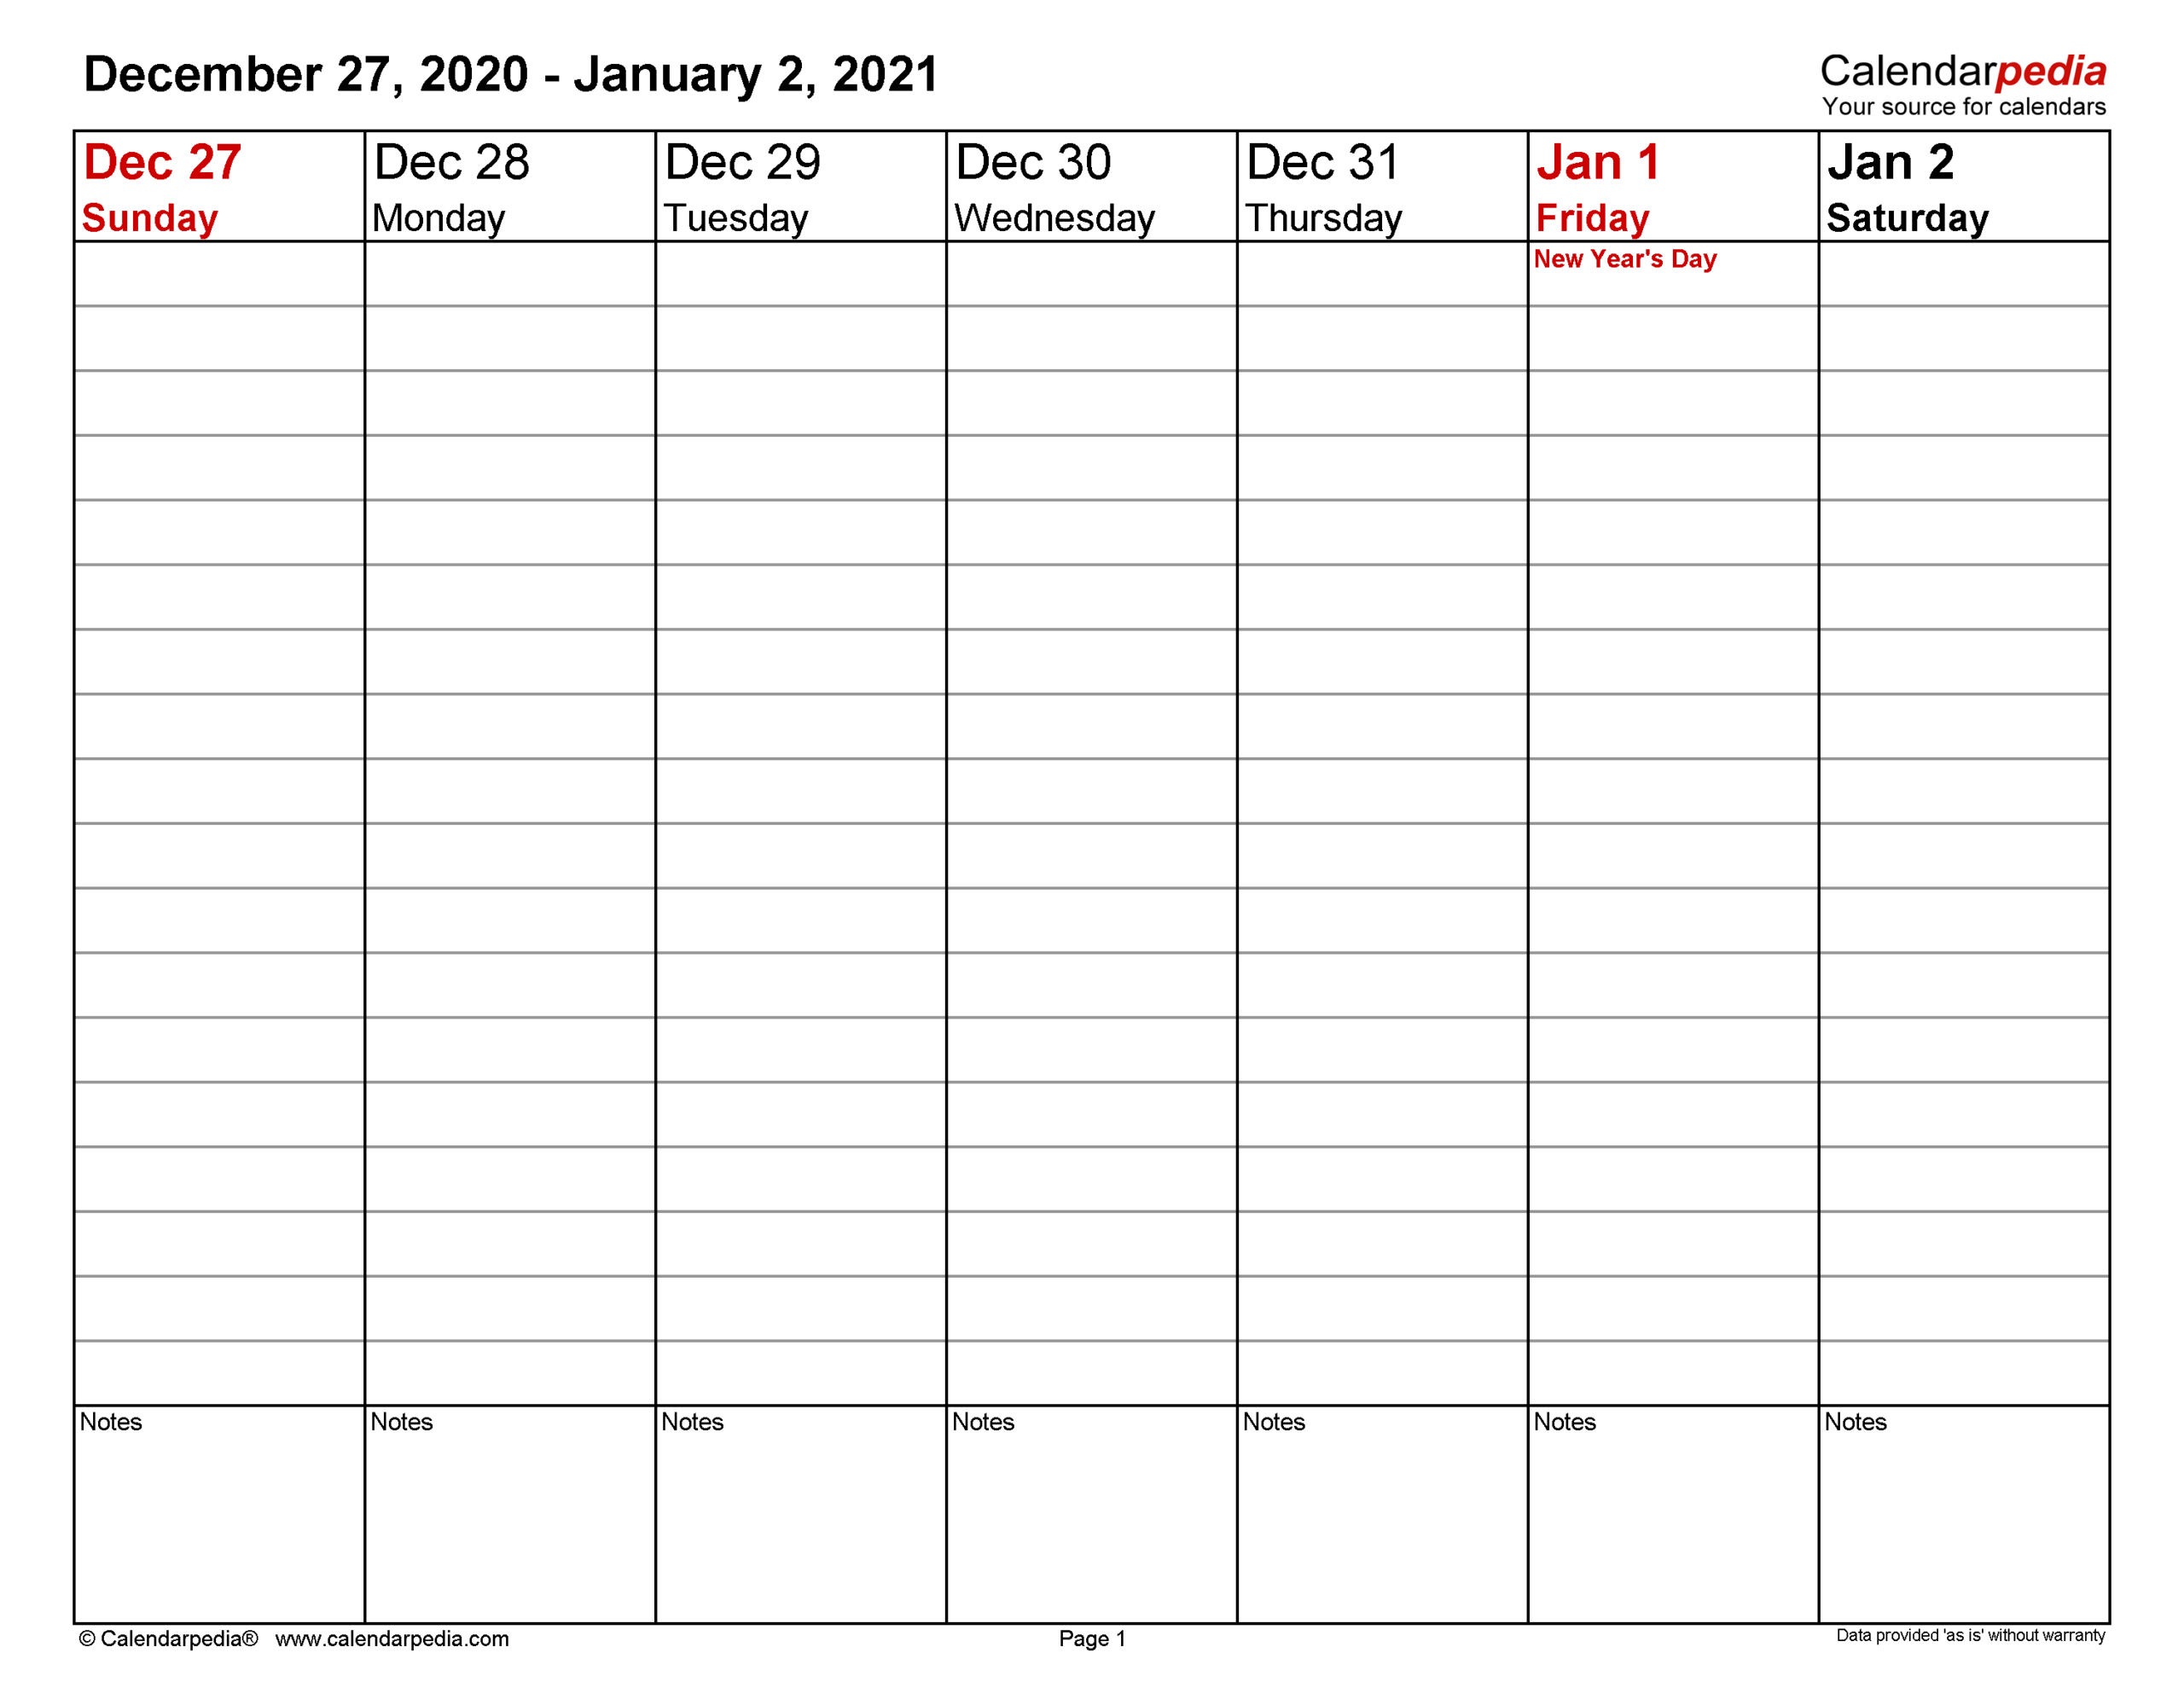 Weekly Calendars 2021 For Excel  12 Free Printable Templates pertaining to 2021 Lined Calendar Printable Excel